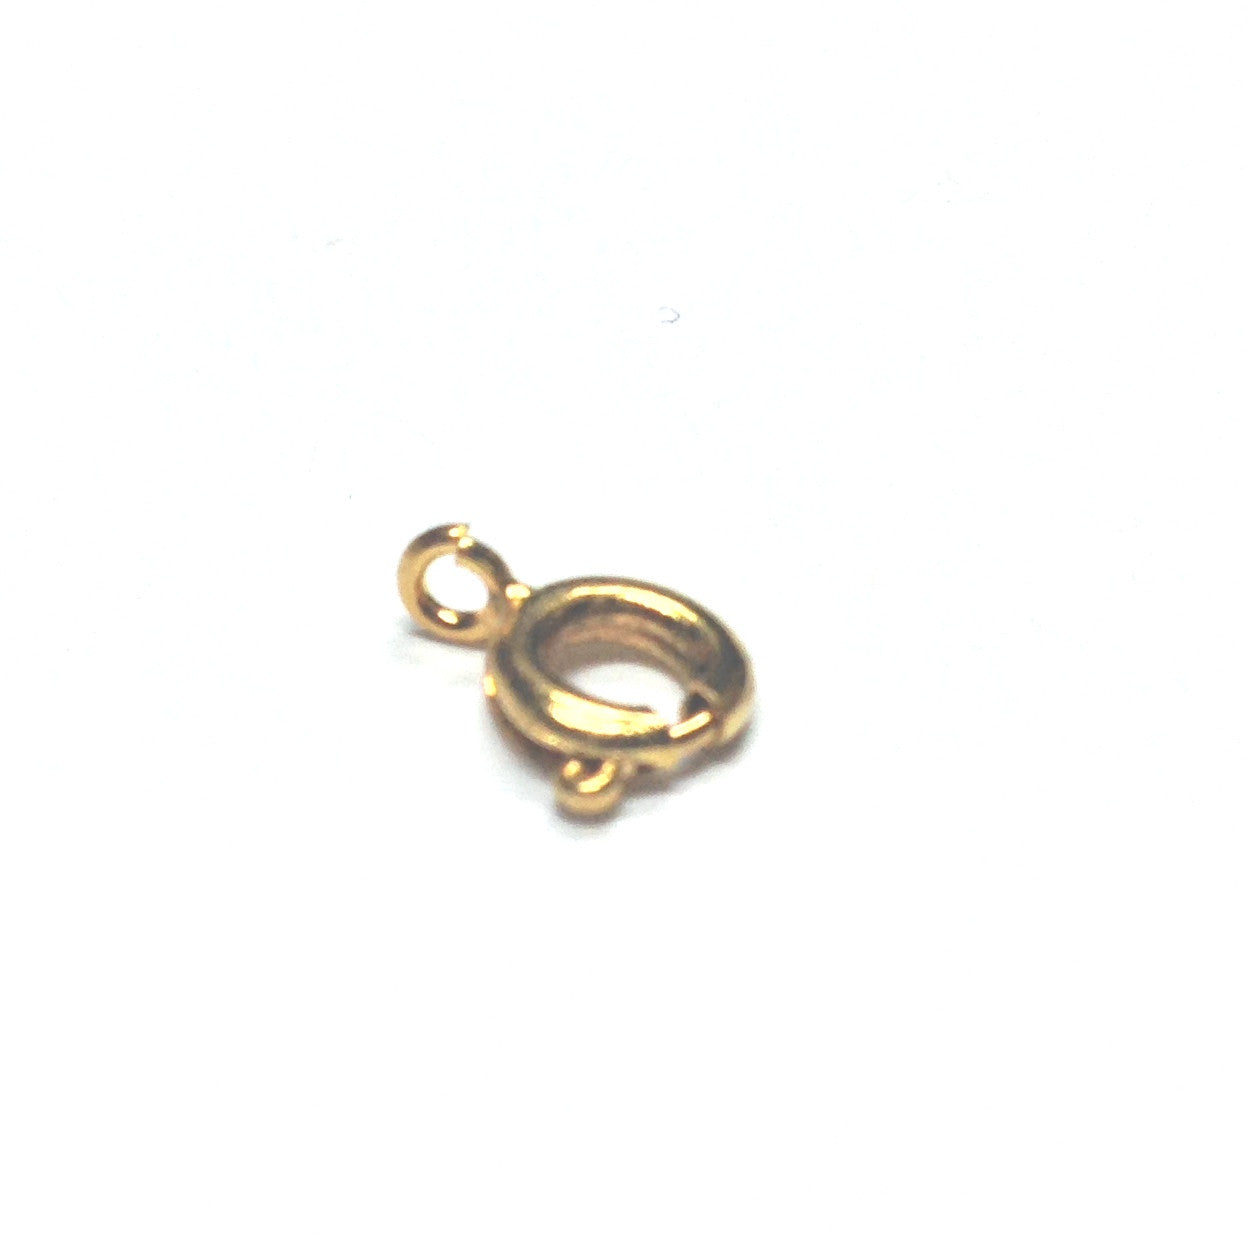 7MM Spring Ring Gold Plate (144 pieces)